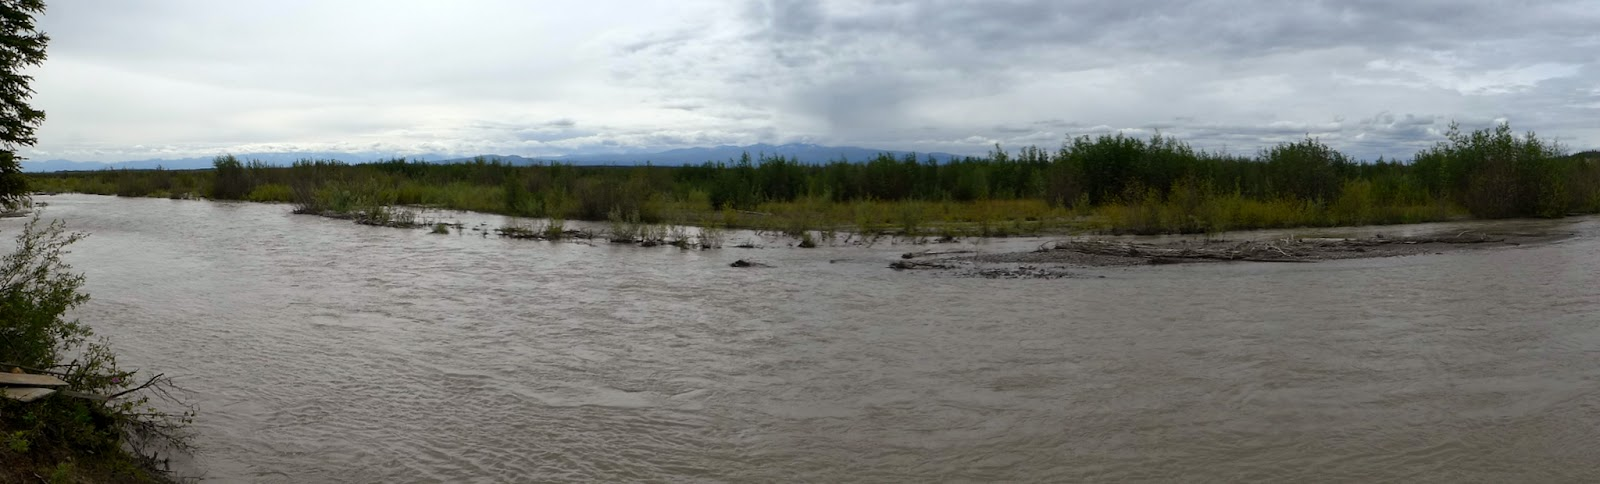 Panorama from the river in Wrangell - St. Elias National Park Preserve